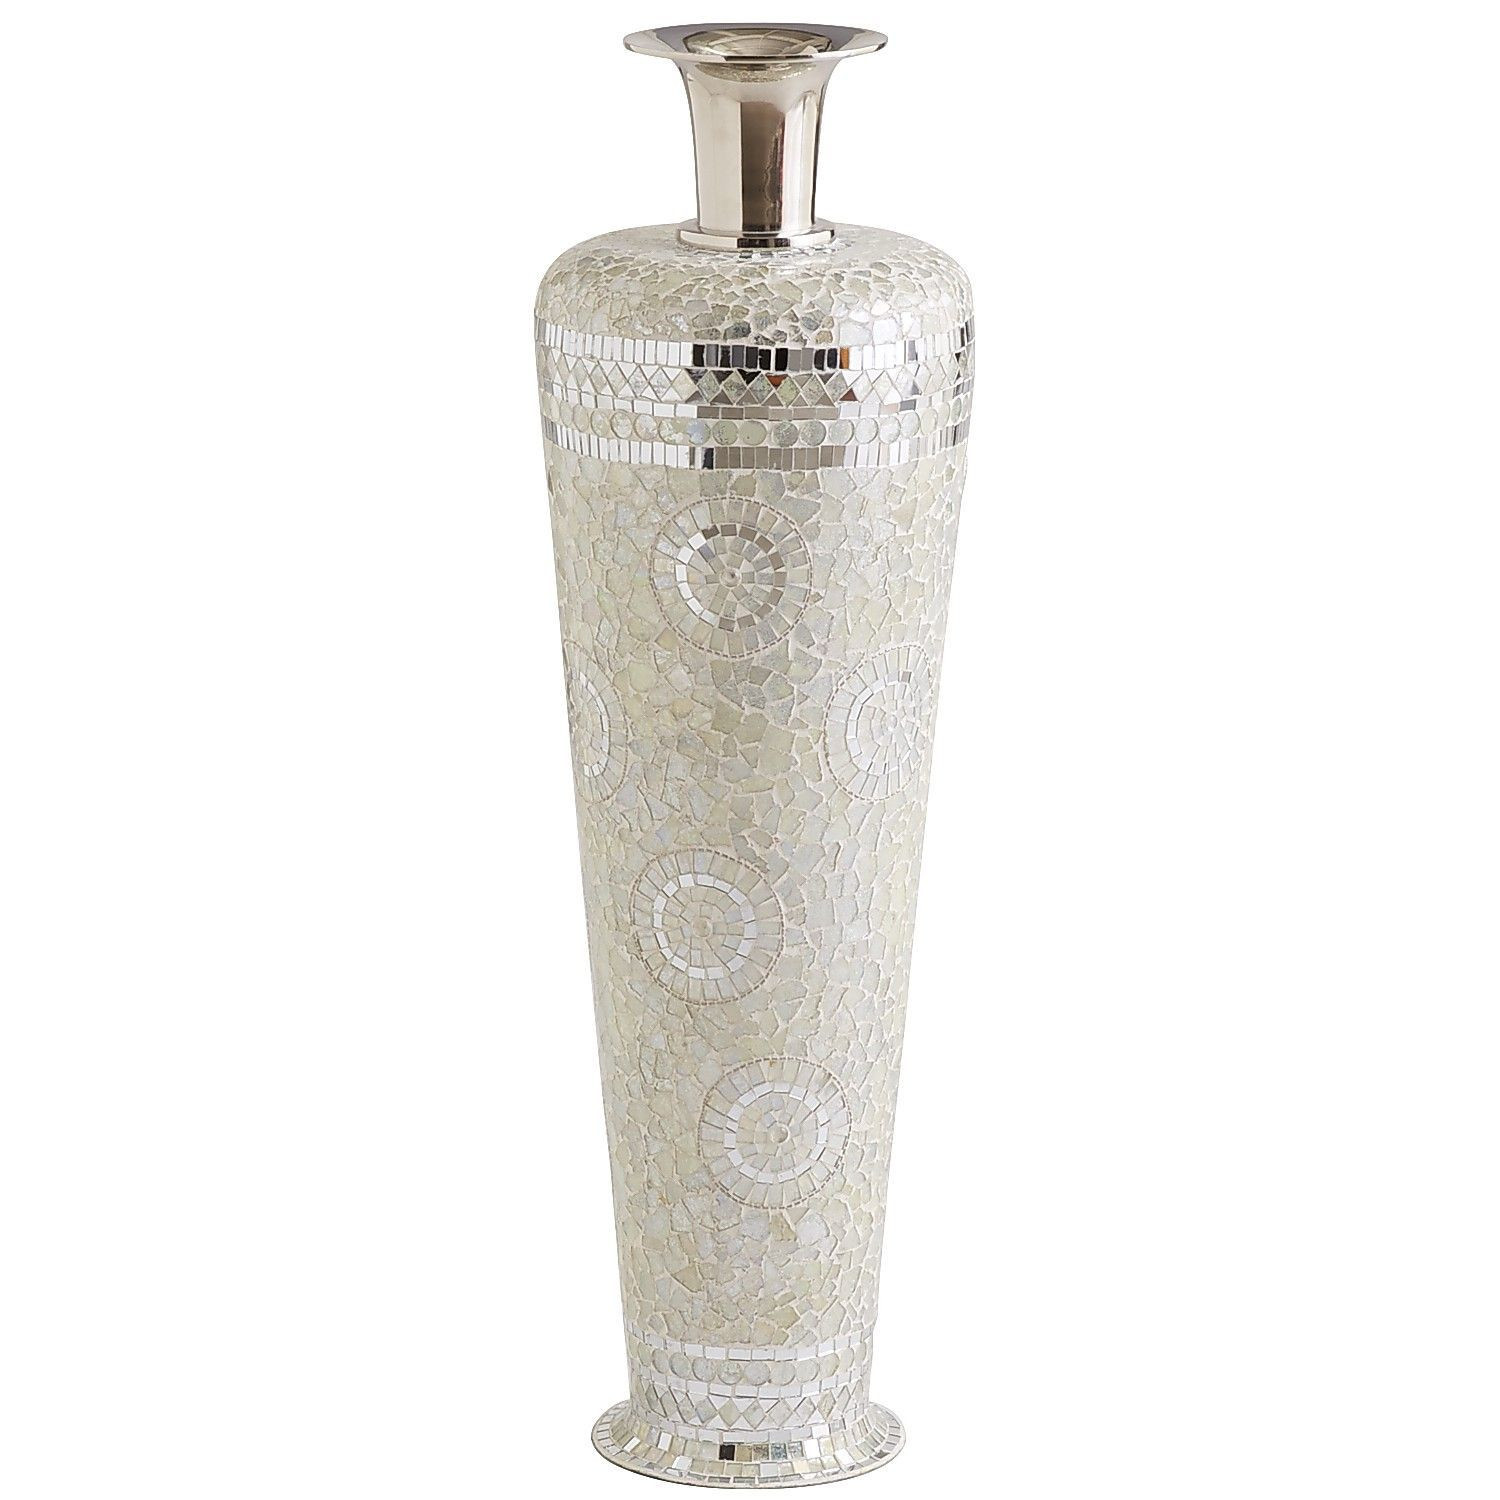 narrow neck vase of decmode round silhouette ceramic vase 71732 intended for silver white mosaic vase